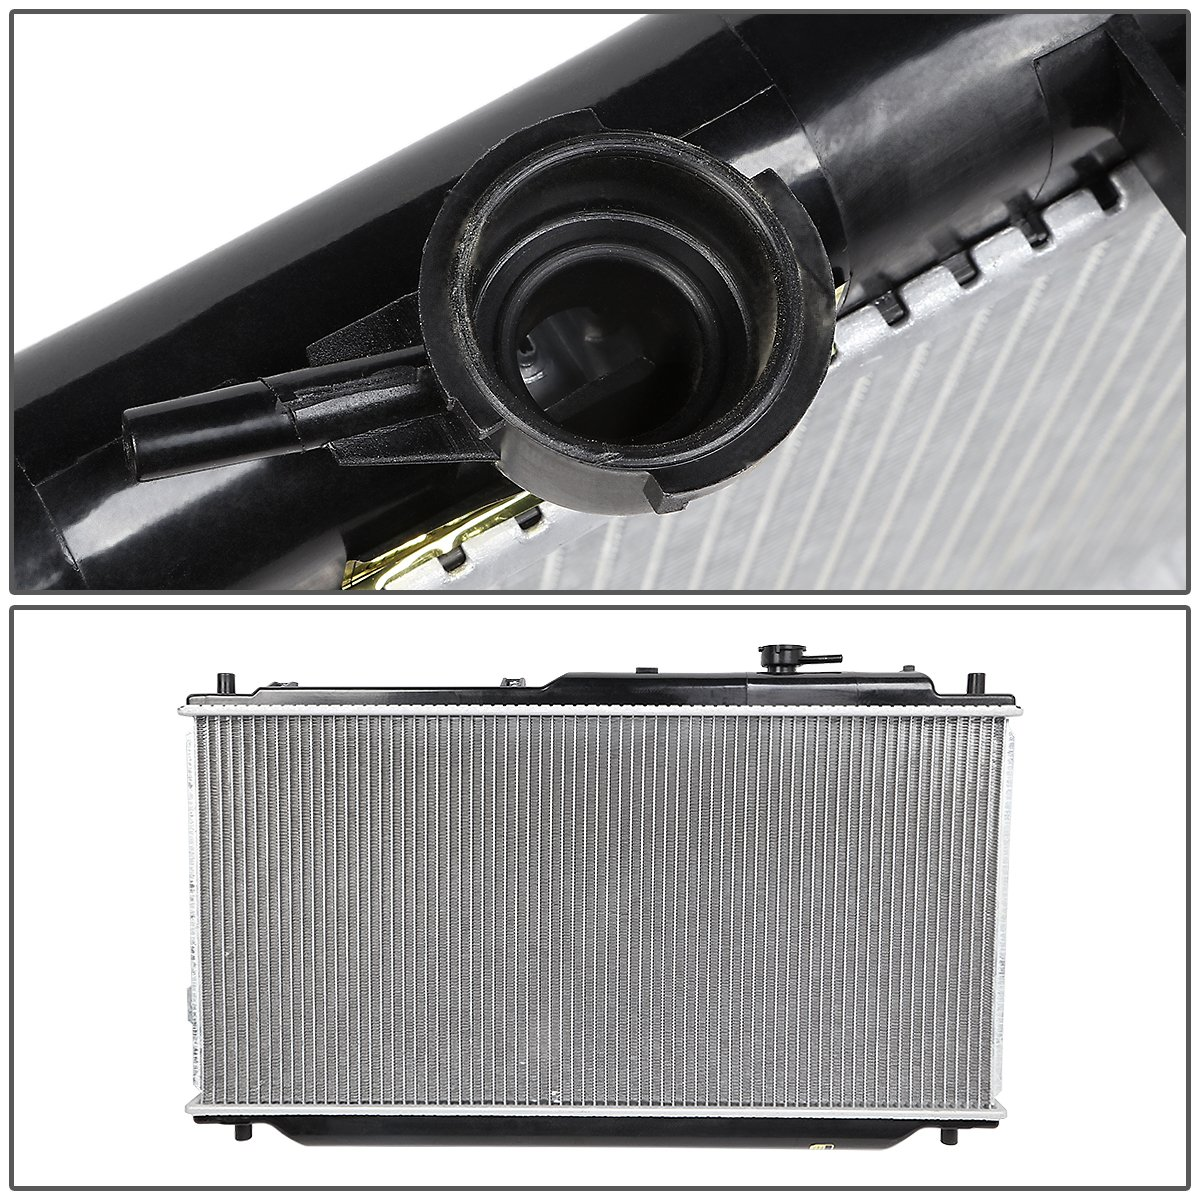 DNA Motoring OEM-RA-2441 OE Style Direct Fit Radiator For 00-00 Spectra